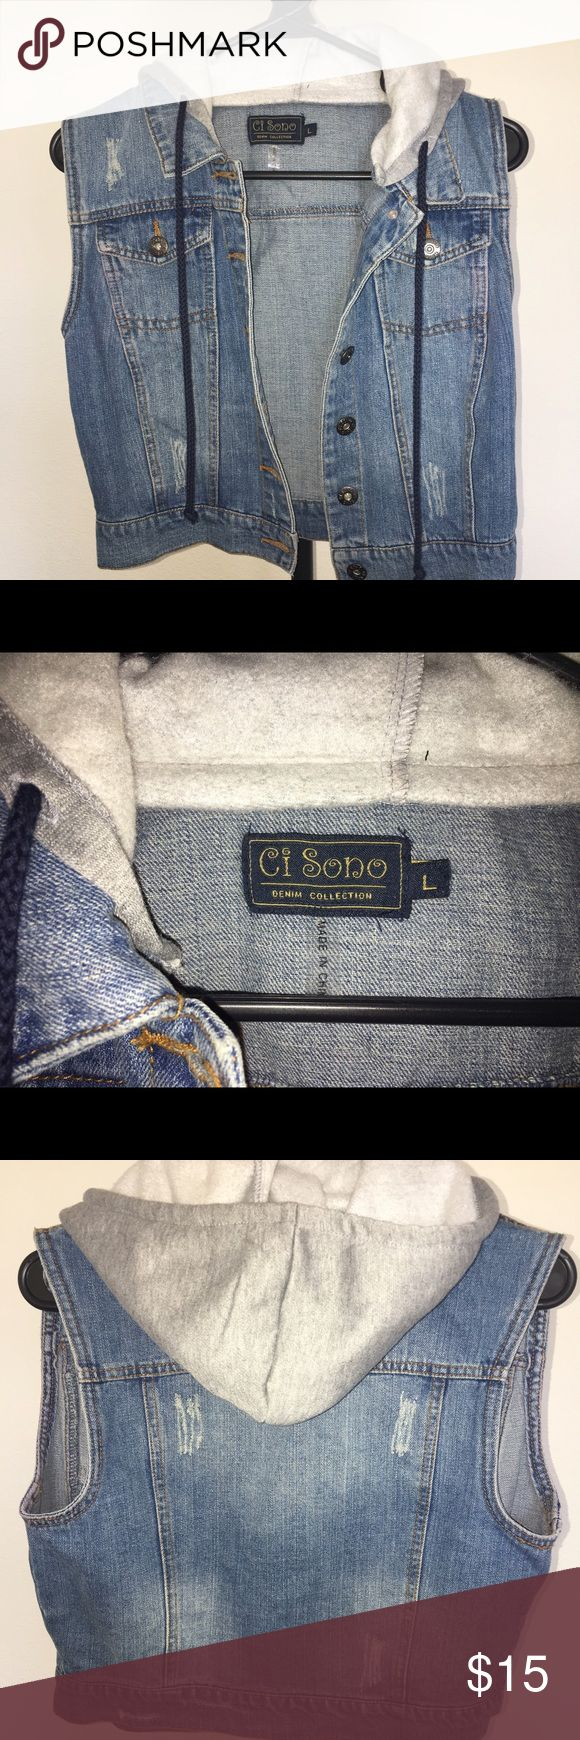 Hooded Jean Vest Brand New never worn, tag shows size large however it does run a bit small. I would say it's more like a medium. Jackets & Coats Vests